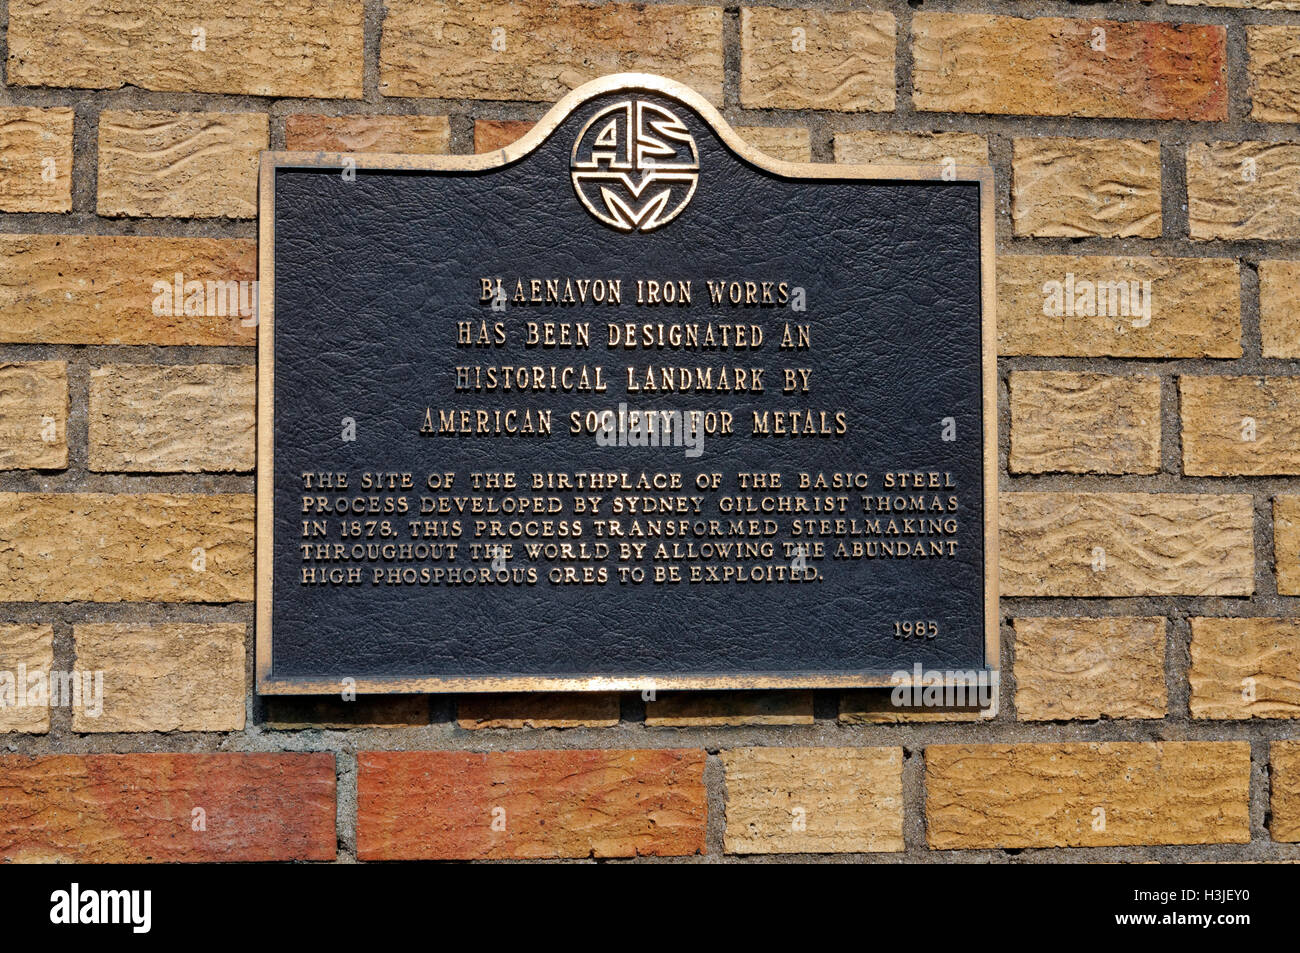 Plaque from the American Society for Metals, Blaenavon Iroronworks, Torfaen, South Wales Valleys - Stock Image